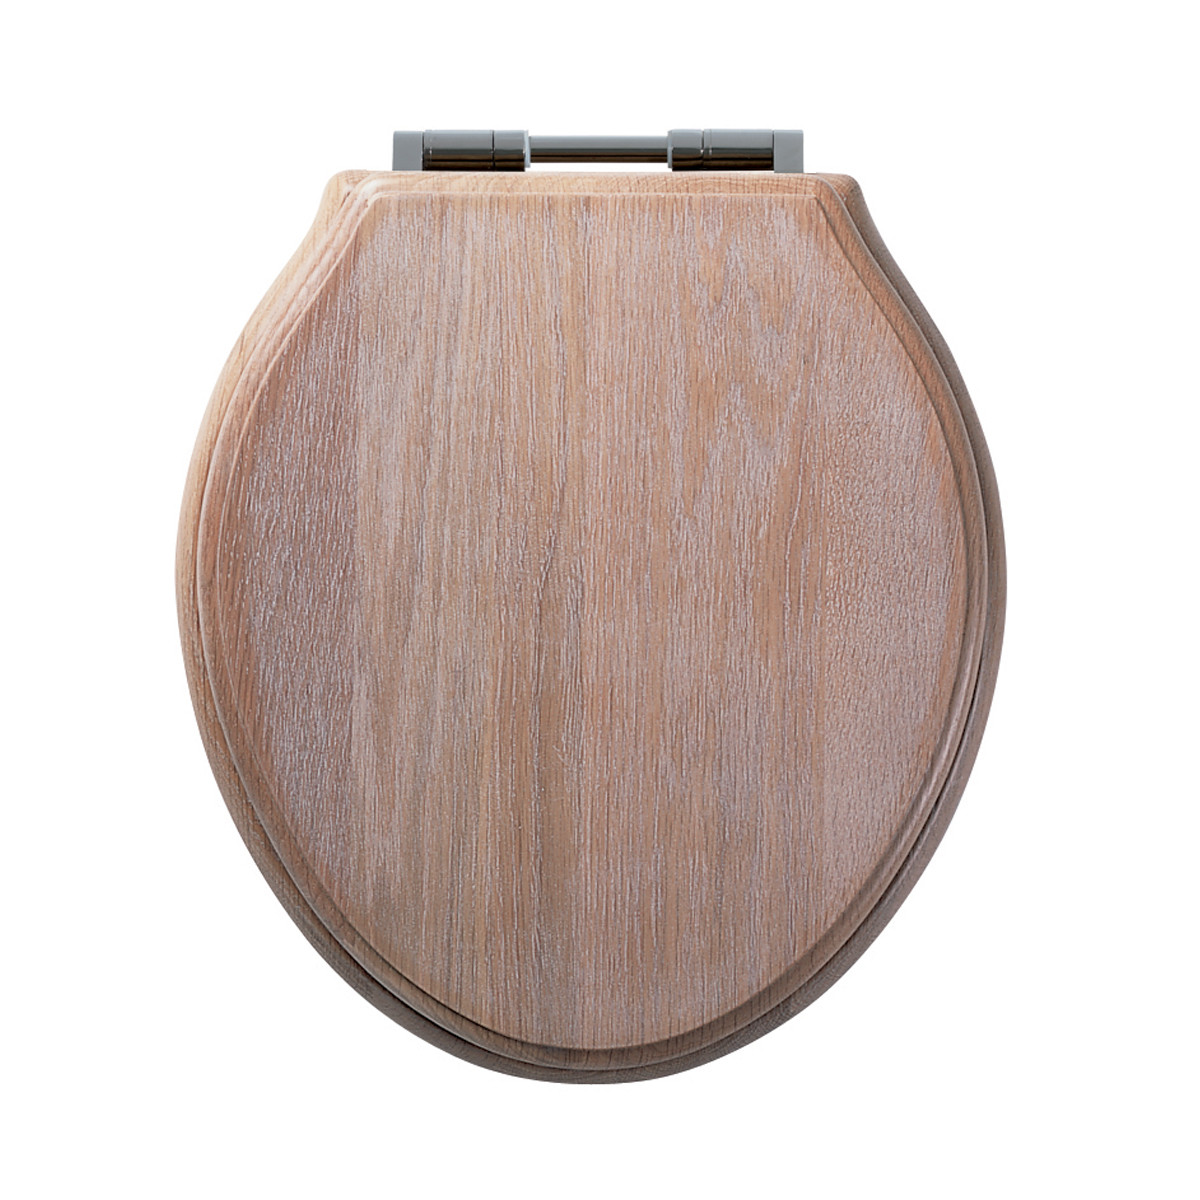 Awe Inspiring Roper Rhodes Greenwich Solid Wood Limed Oak Soft Close Toilet Seat Gmtry Best Dining Table And Chair Ideas Images Gmtryco